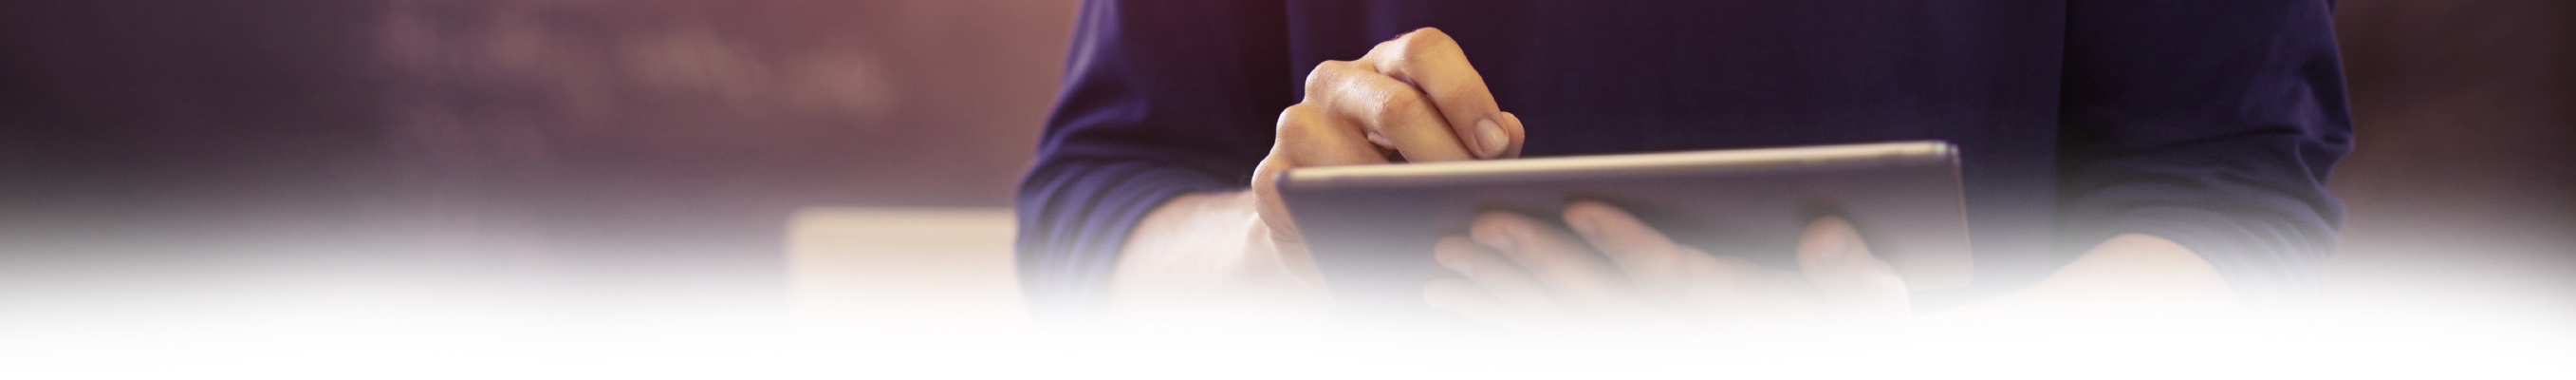 Cropped shot of a young man using a digital tablet